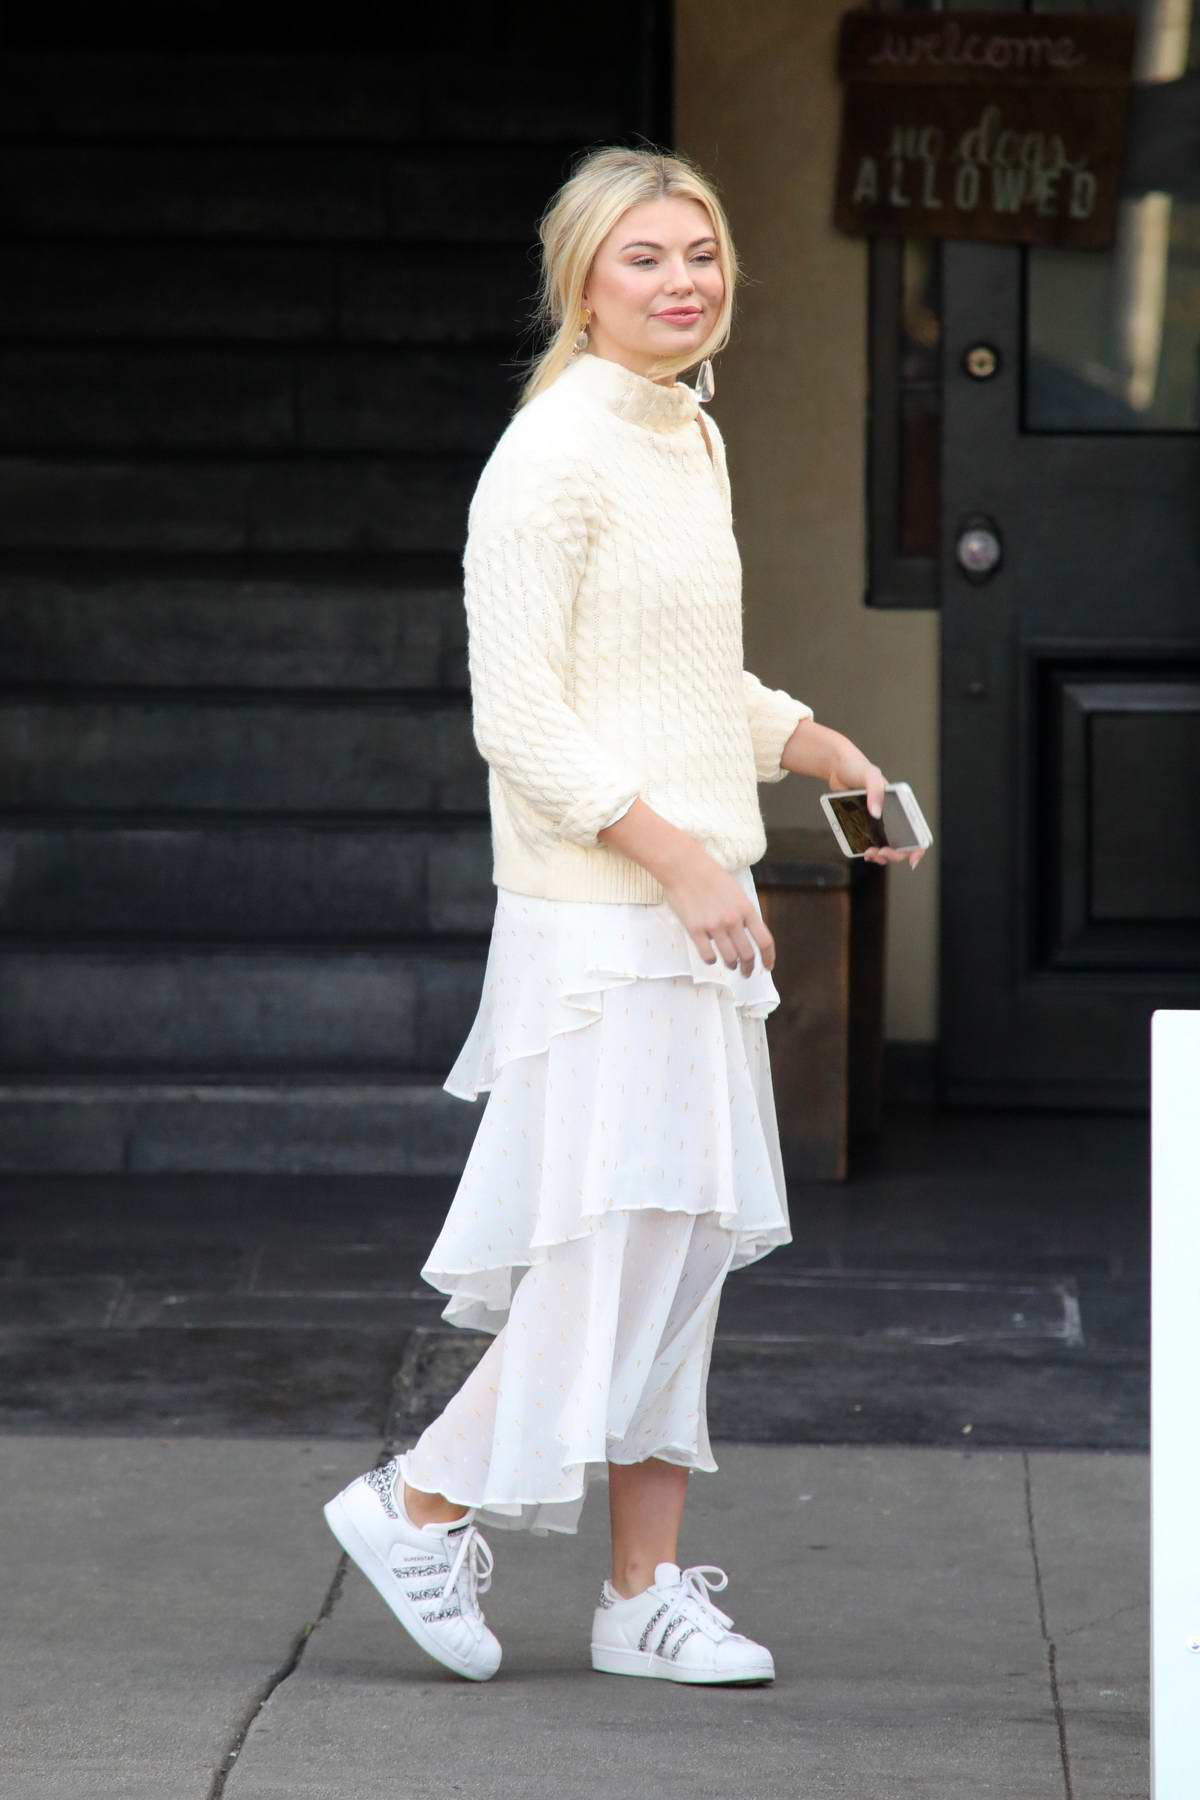 Georgia Toffolo dressed in all while as she leaves Kate Somerville Skin Health Clinic in Los Angeles